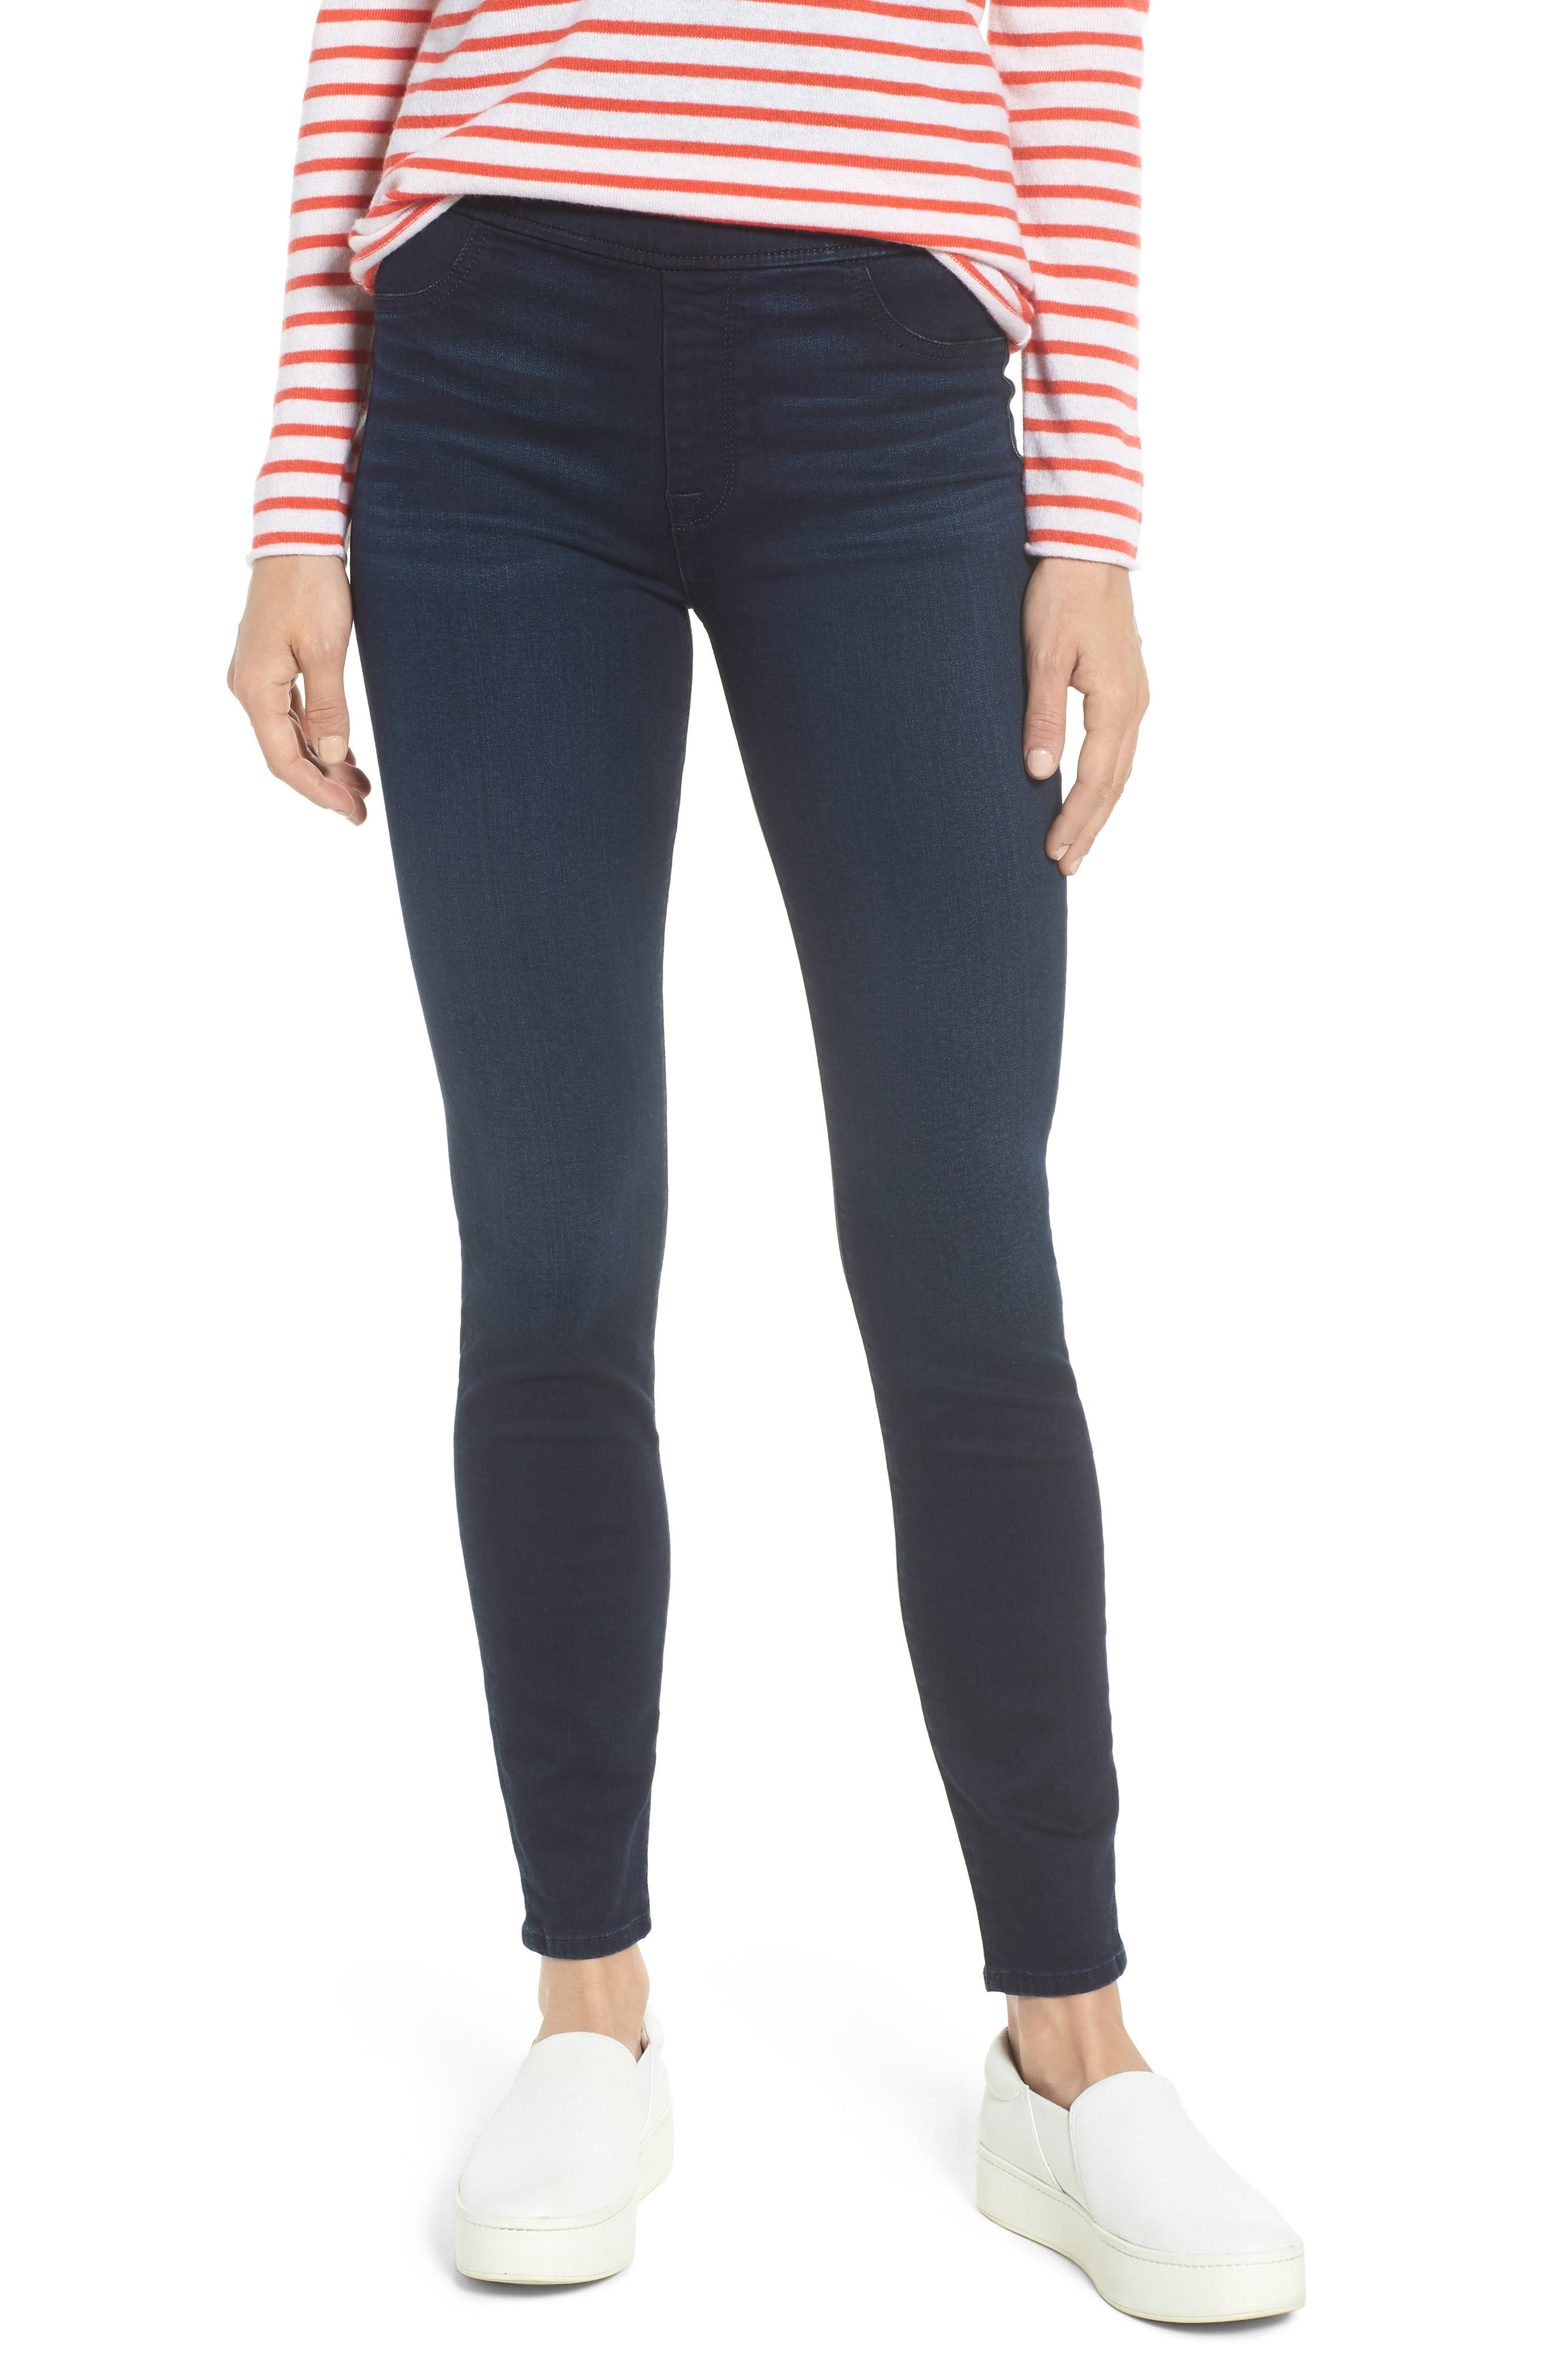 Comfort Skinny Denim Leggings,                         Main,                         color, RICHE TOUCH BLUE/BLACK